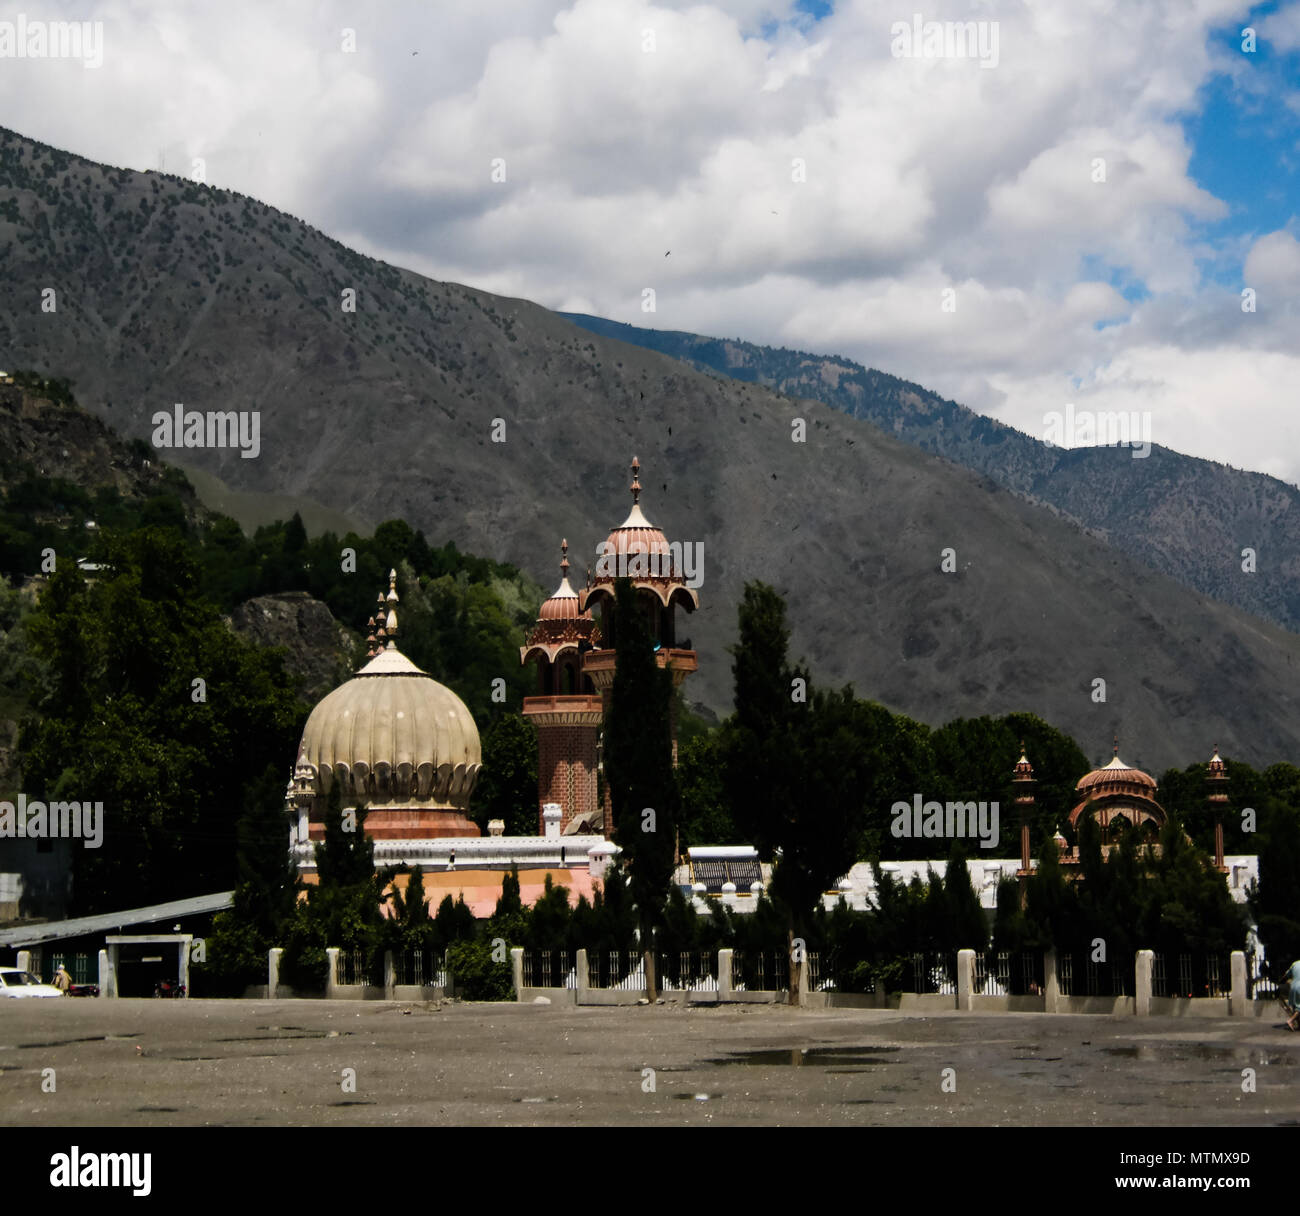 View to Chitral Mosque, Khyber Pakhtunkhwa province, Pakistan - Stock Image